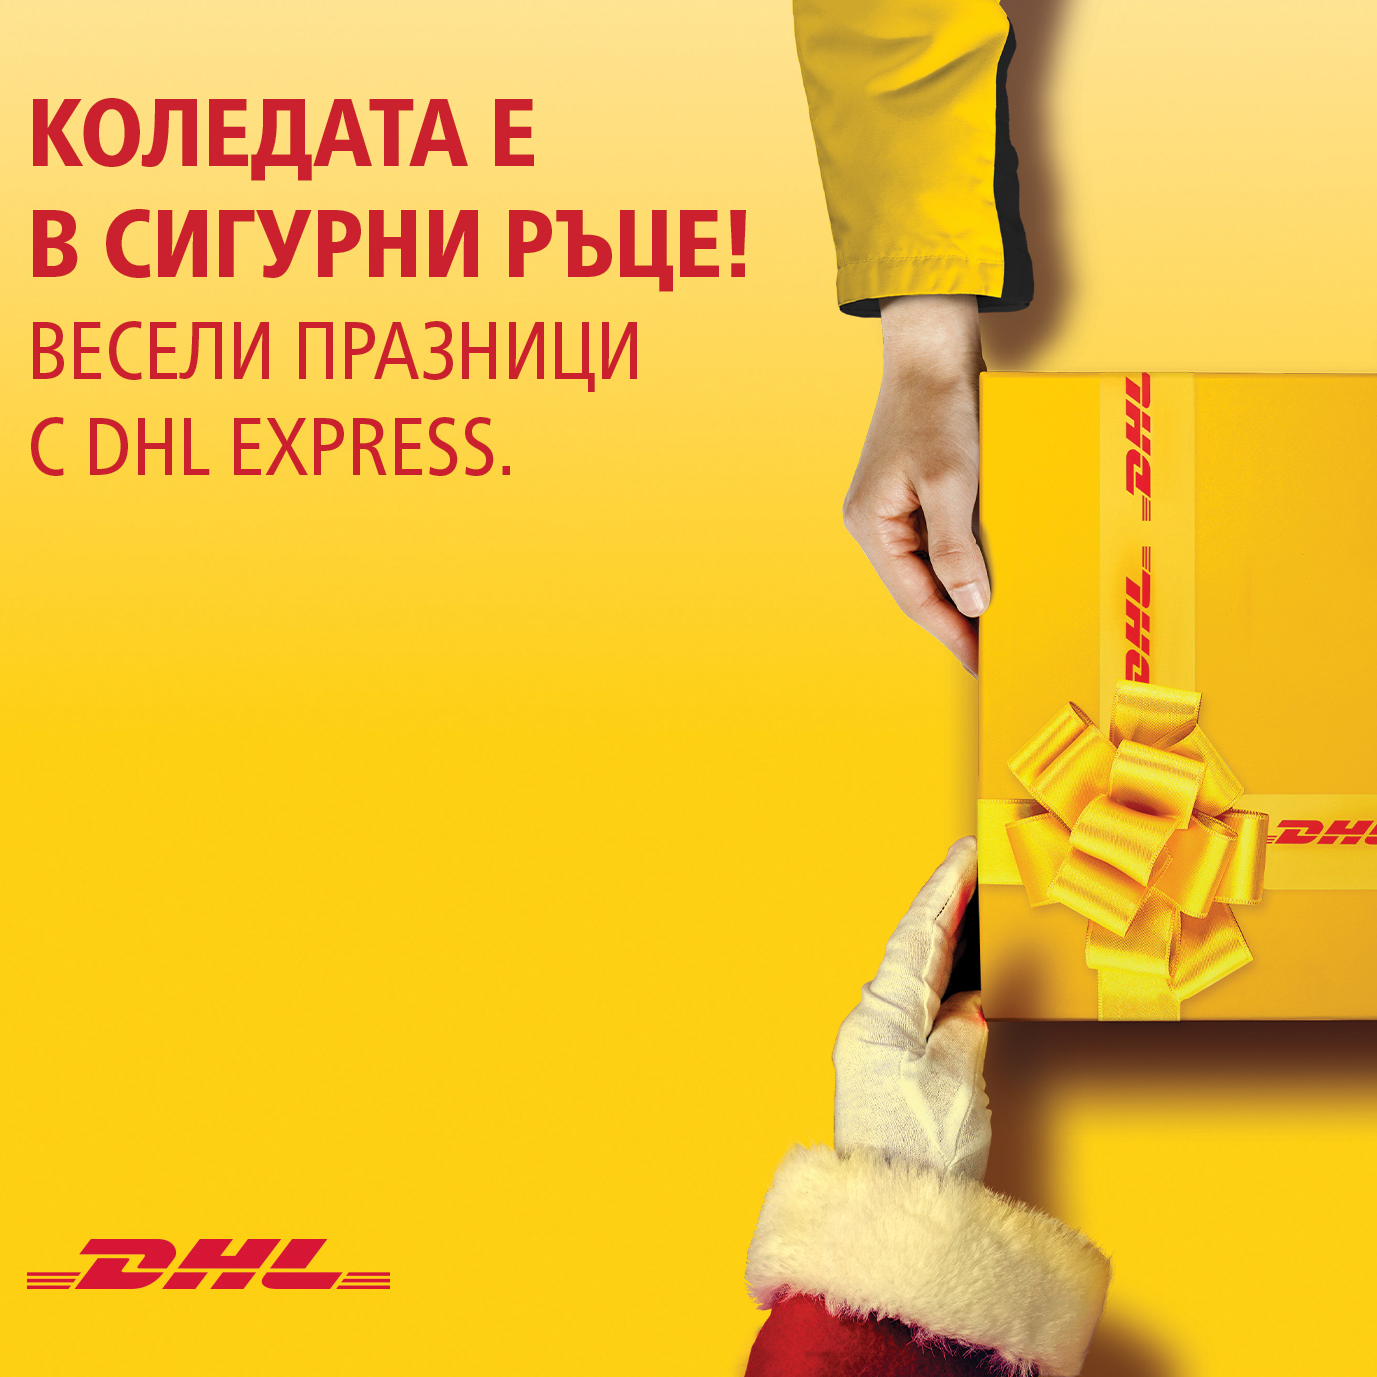 DHL Christmas card